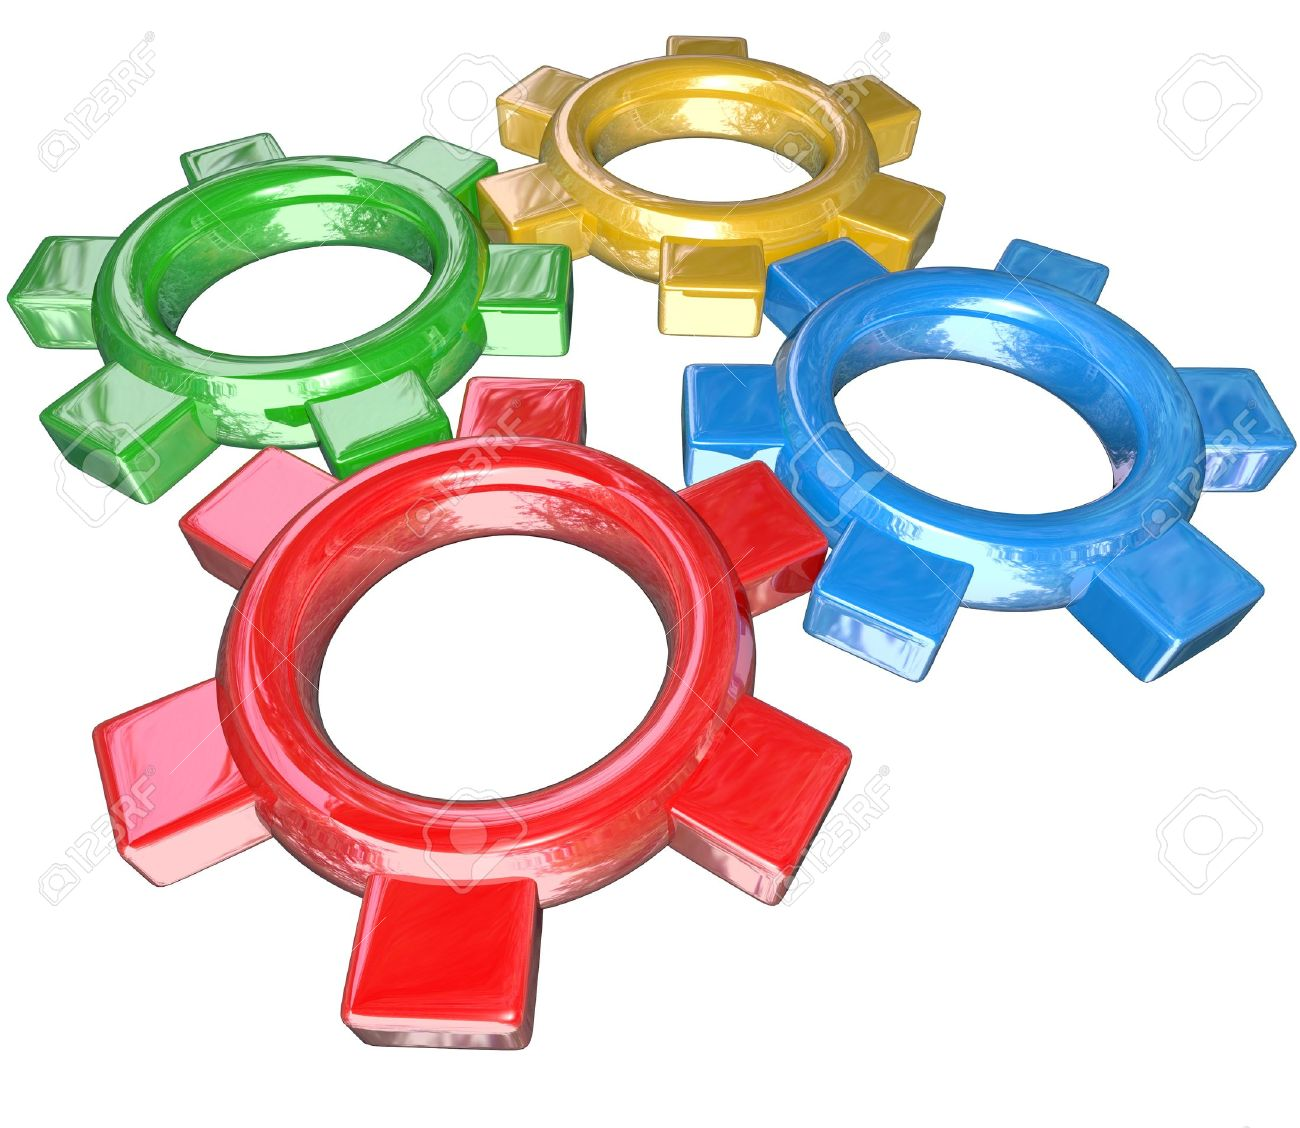 Four colorful gears -- one green, red, blue and gold -- turn in unison to symbolize synergy, cooperation, parternship and collaboration in working together to meet a goal or overcome a challenge Stock Photo - 10658132